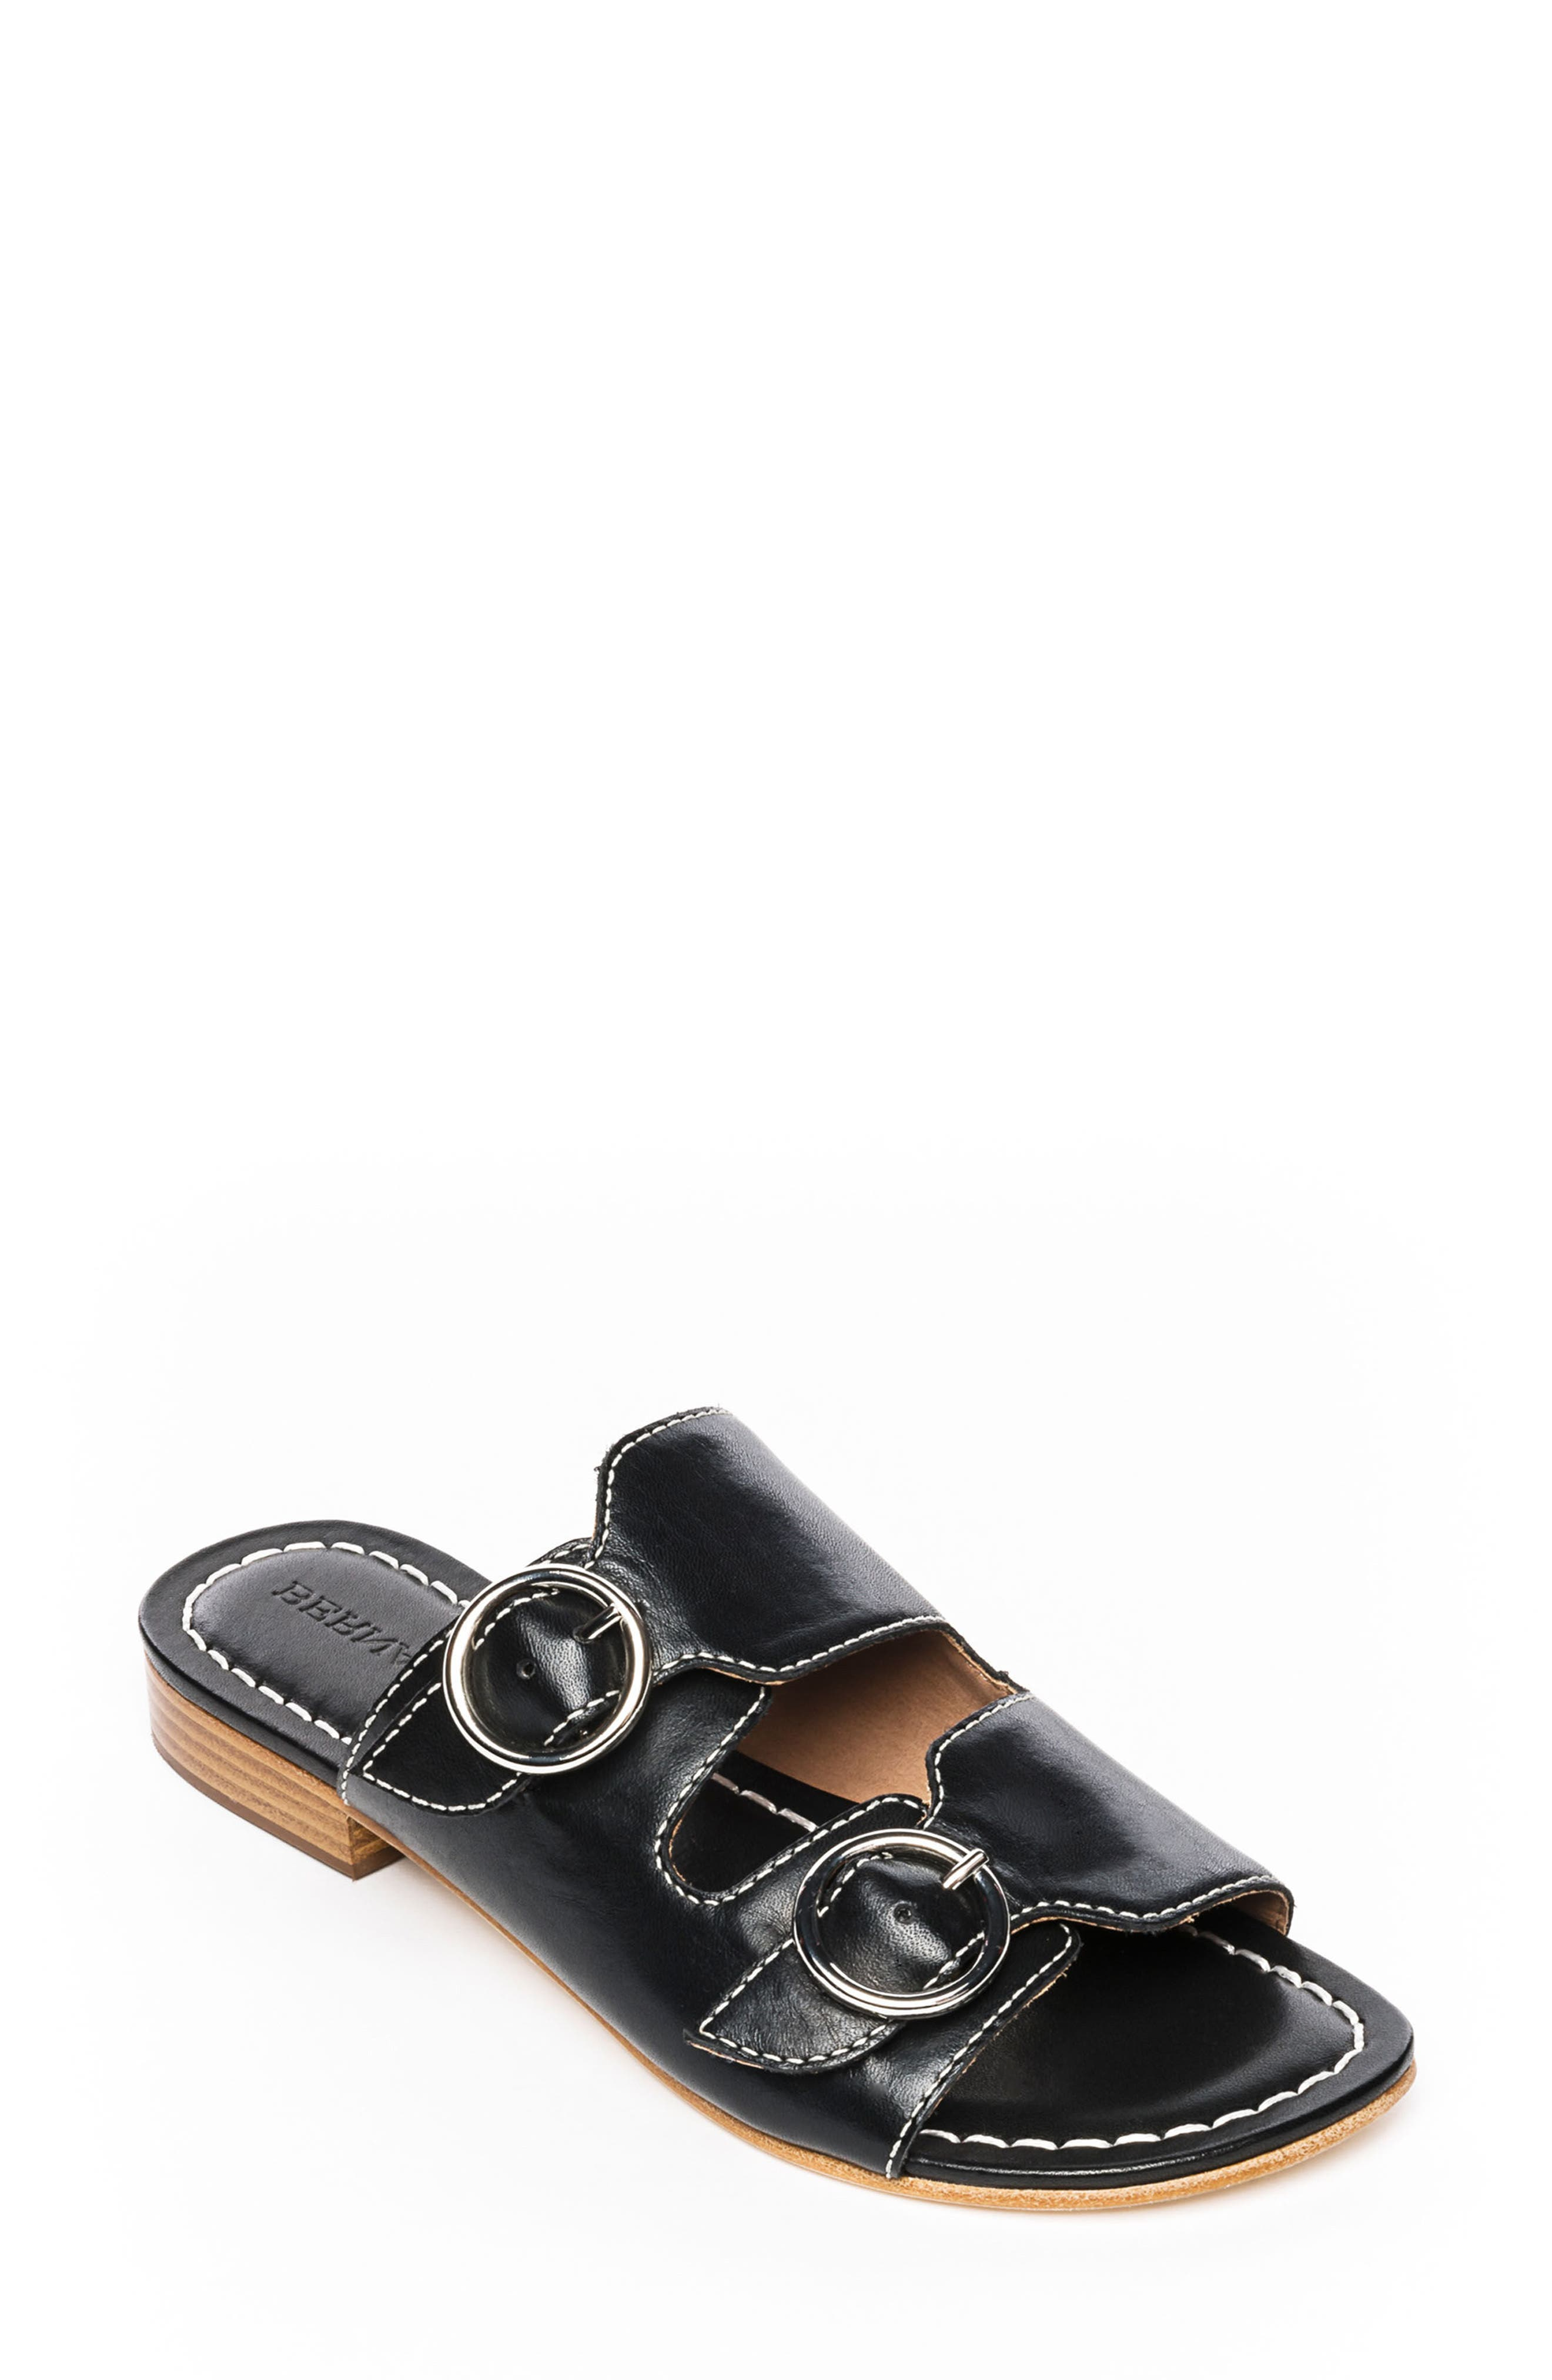 Bernardo Tobi Slide Sandal,                         Main,                         color, 001